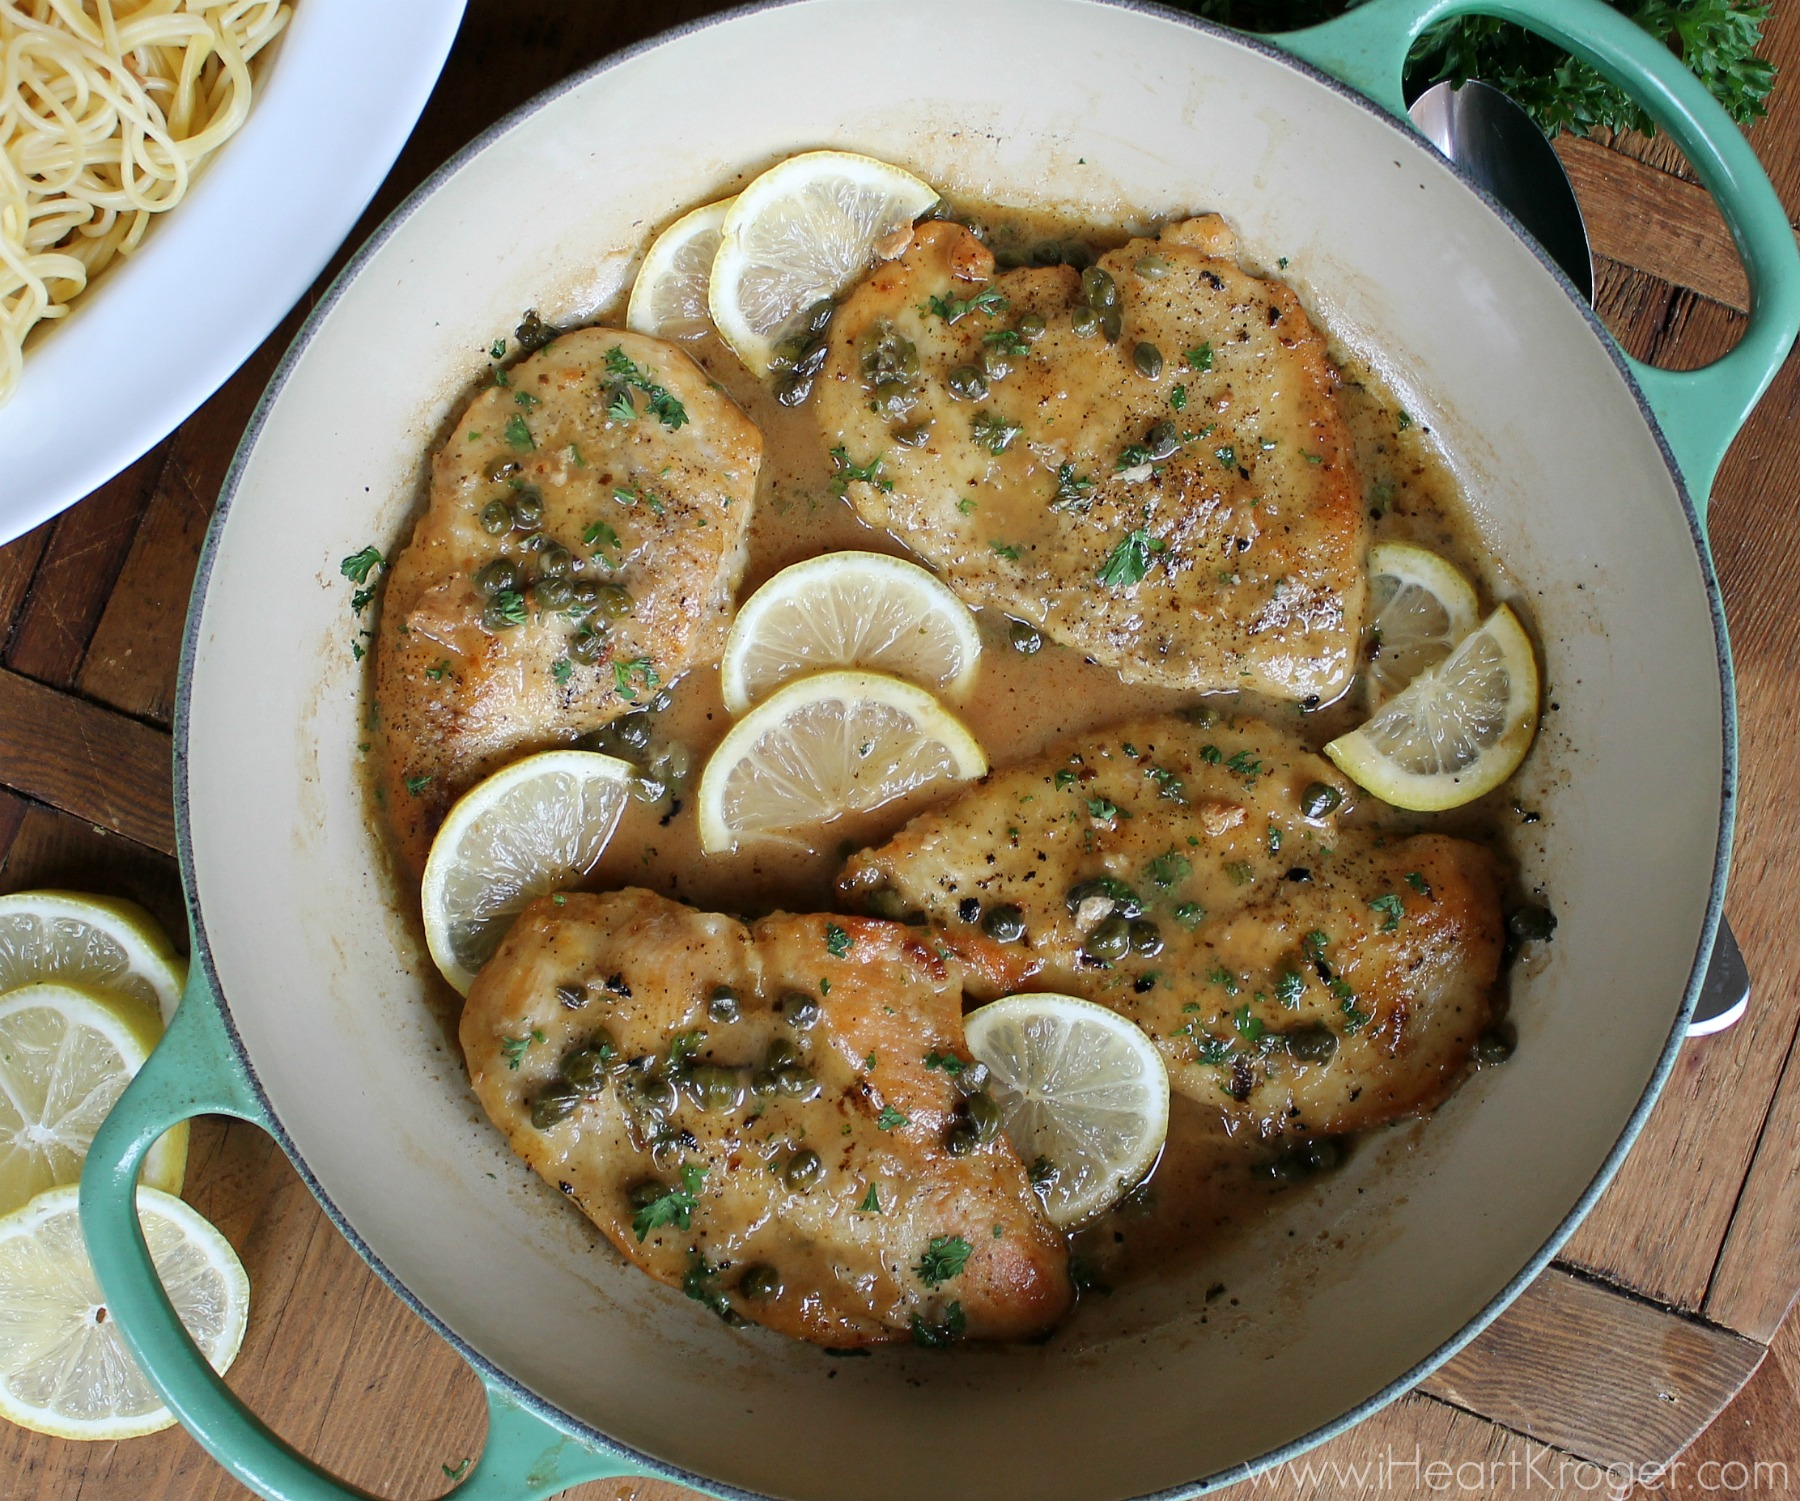 Easy Weeknight Chicken Piccata - Save On Holland House Cooking Wine At Kroger! 2